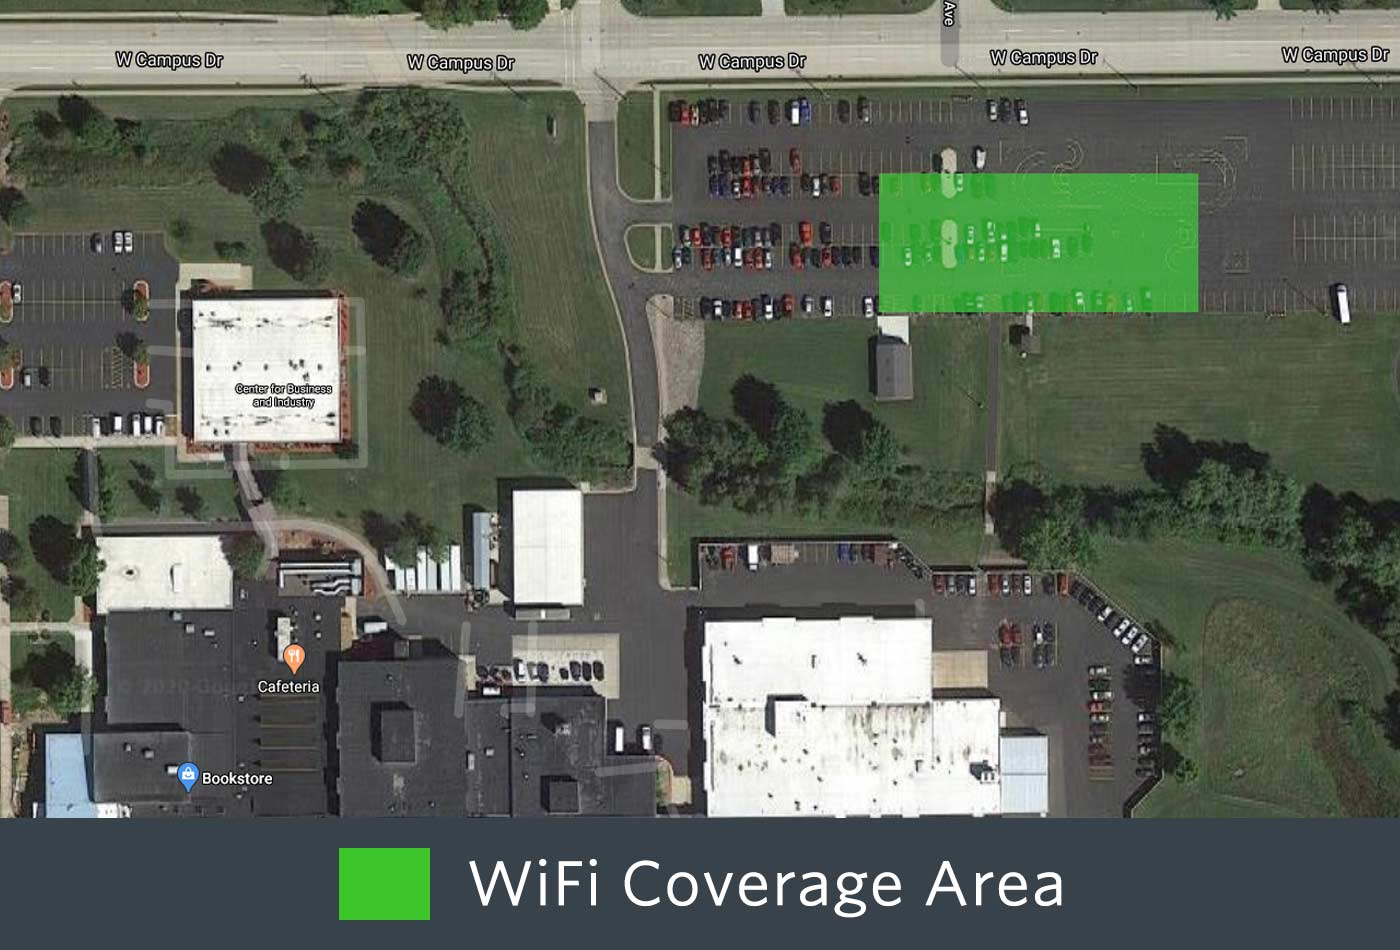 Outdoor WiFi coverage of the back of the Wausau Campus